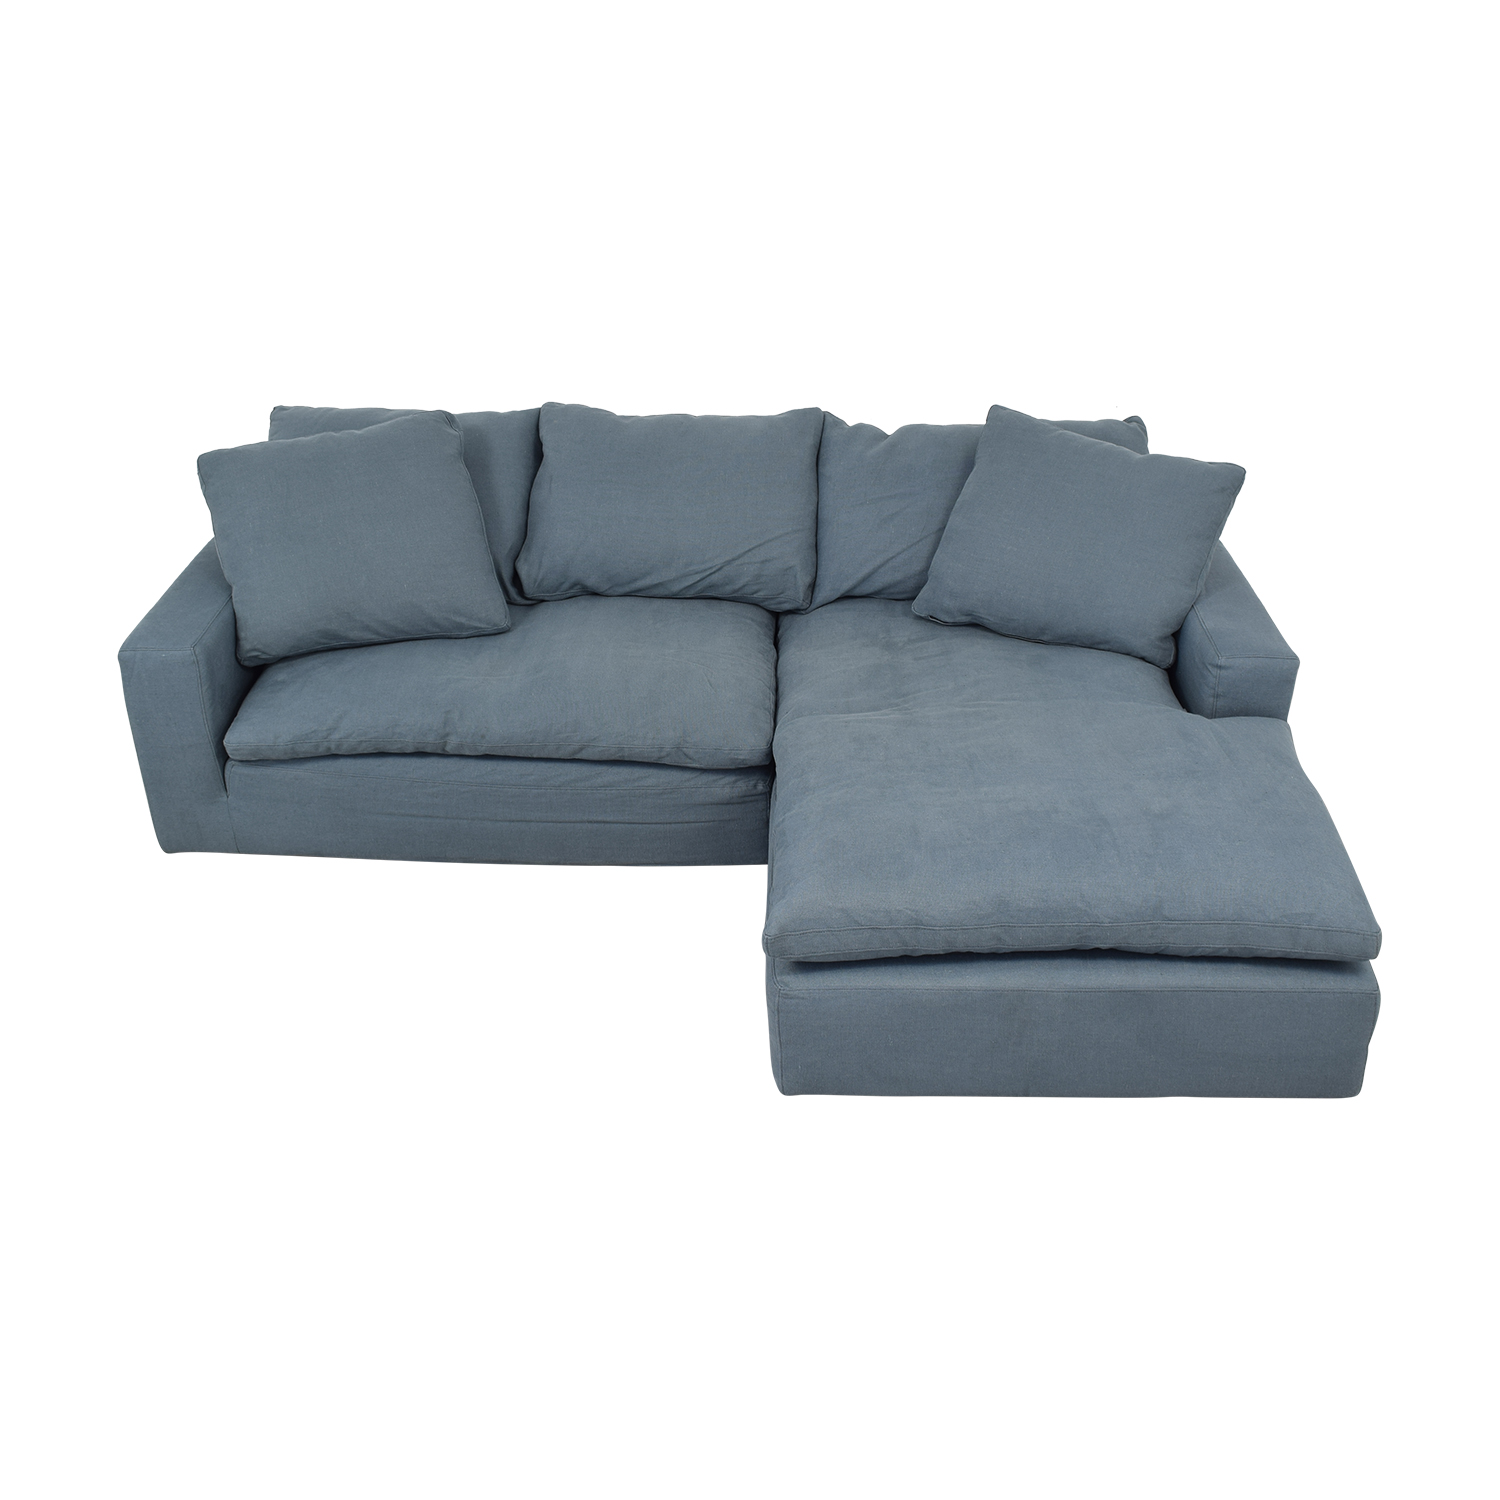 Restoration Hardware Restoration Hardware Cloud Sectional price